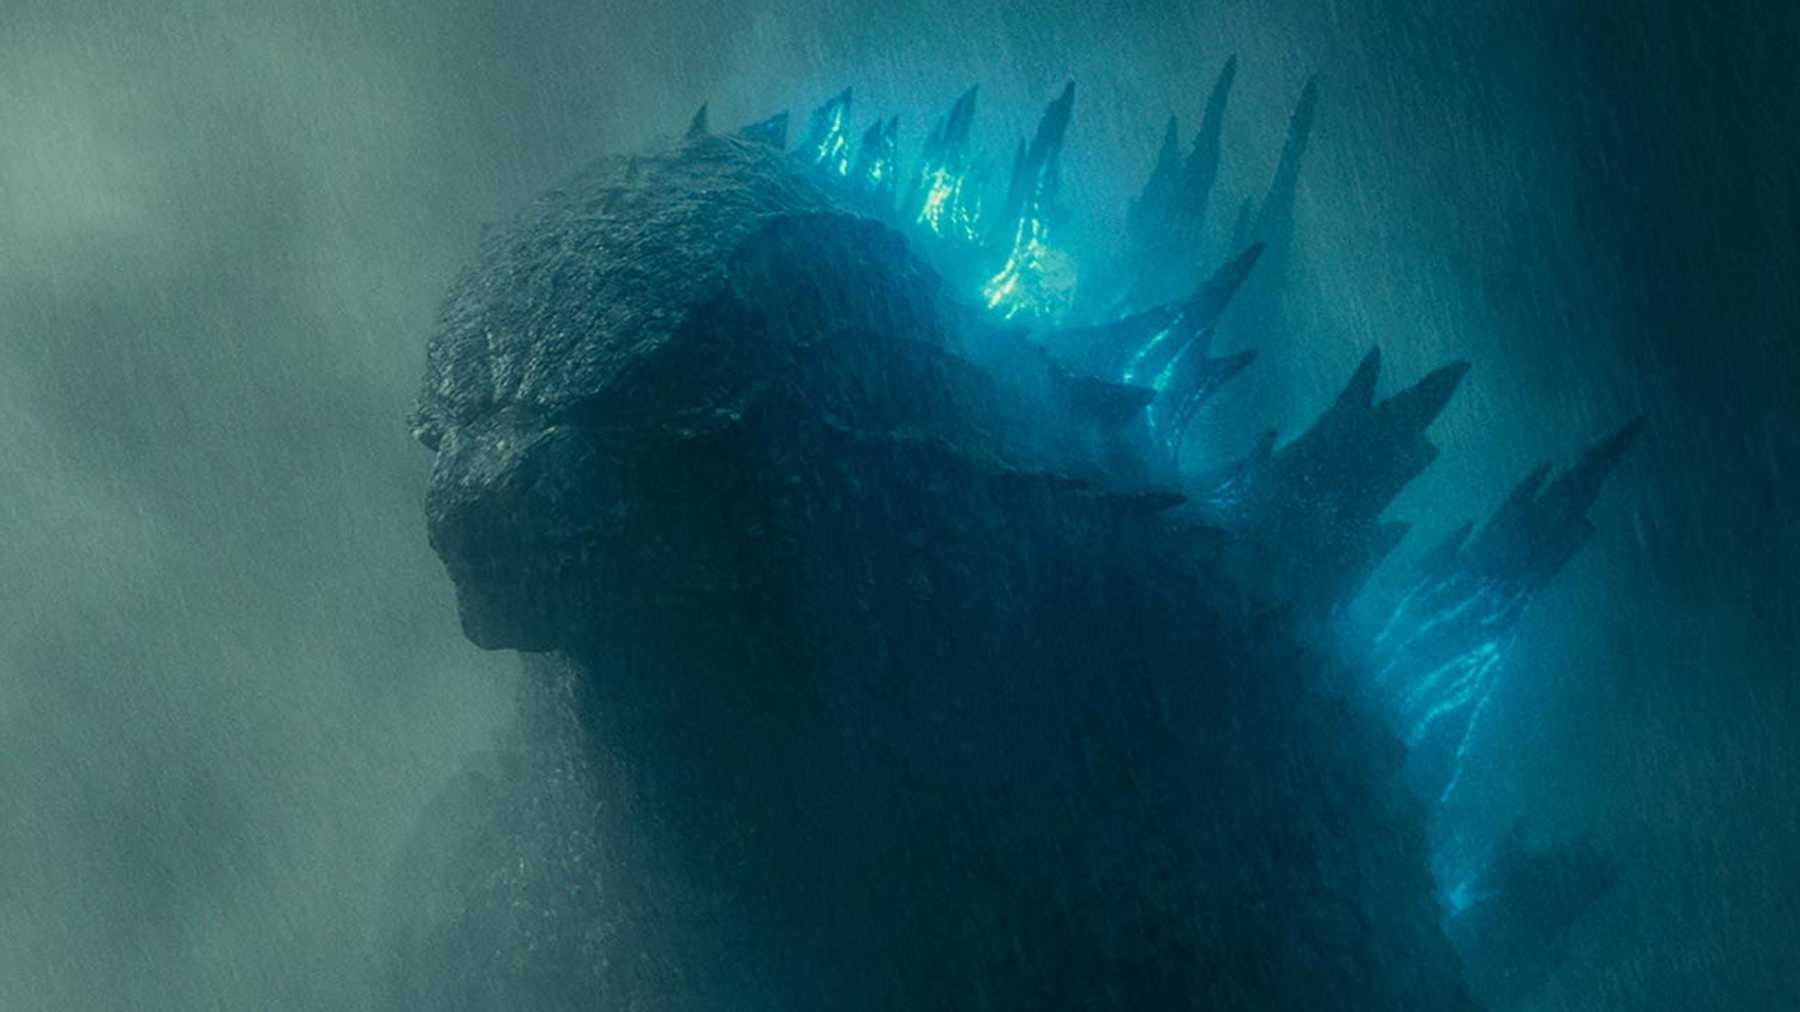 The return of Godzilla in Godzilla, King of the Monsters (2019)